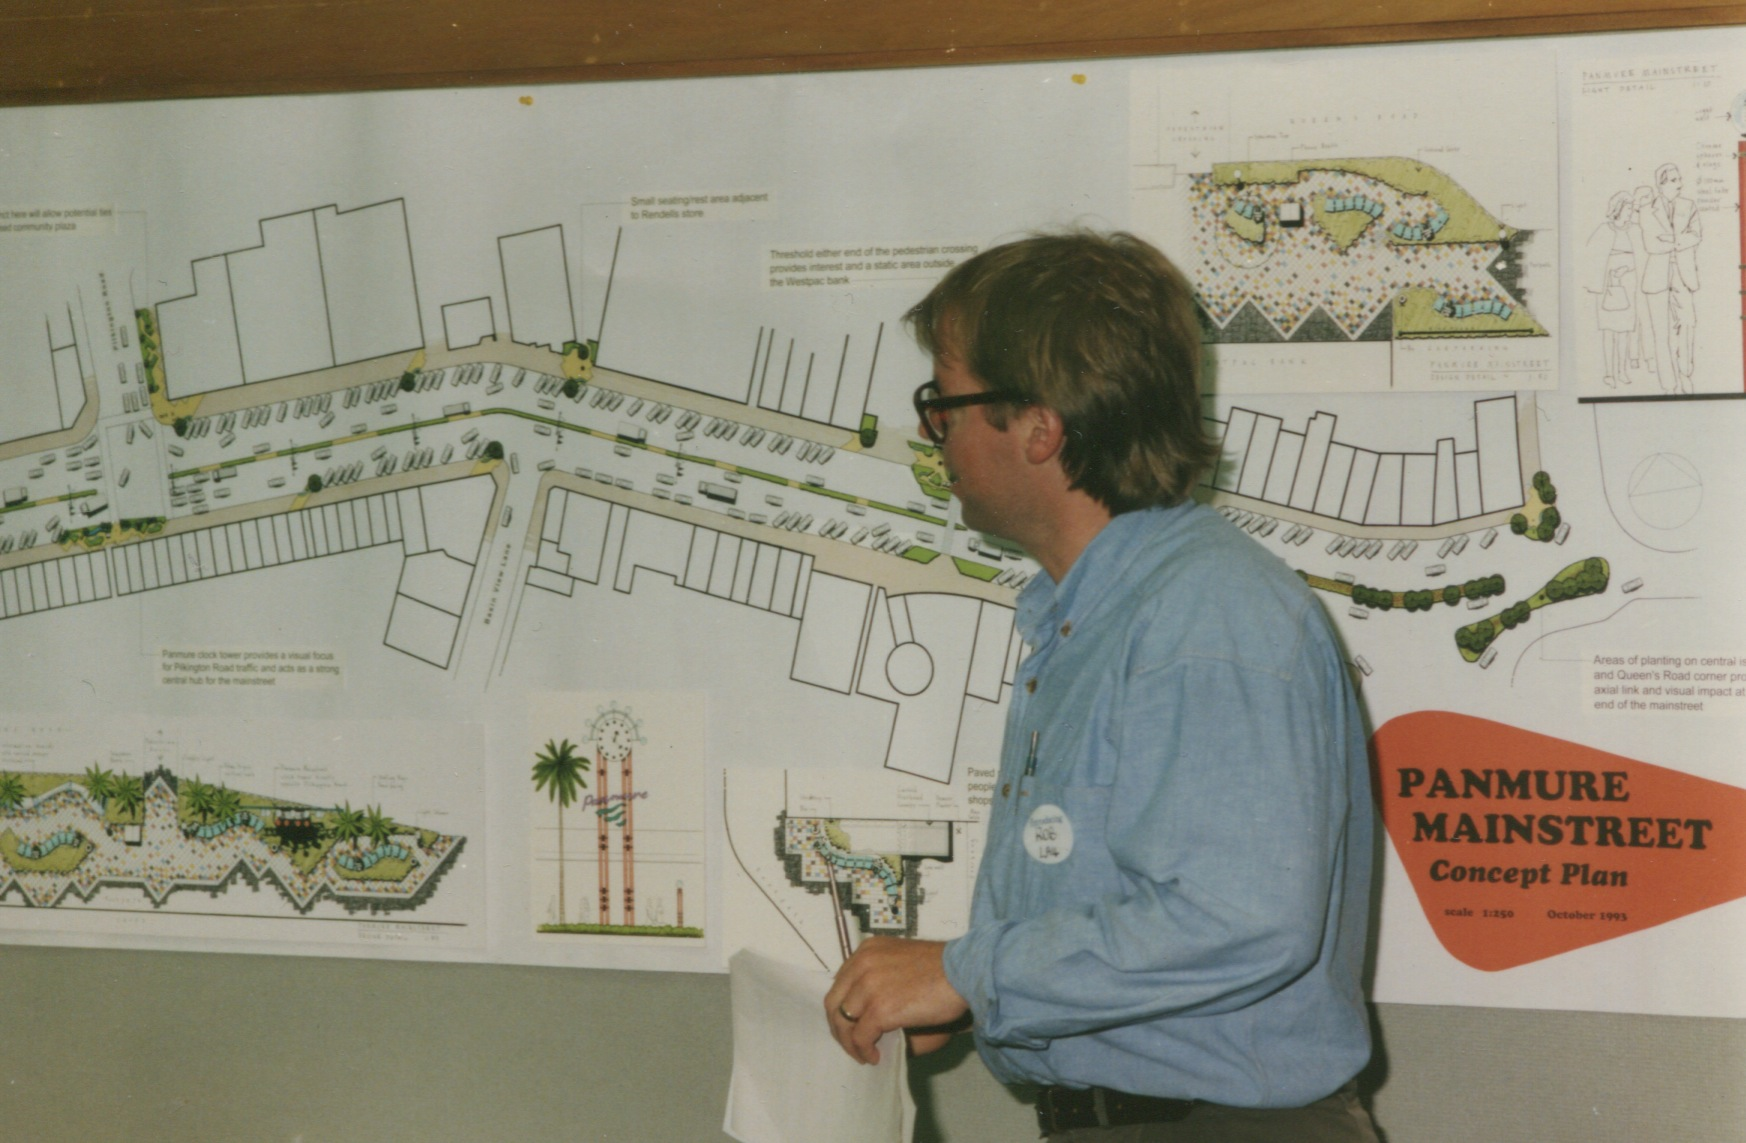 Panmure Mainstreet initial planning. Date unknown. Image courtesy of Panmure Historical Society.